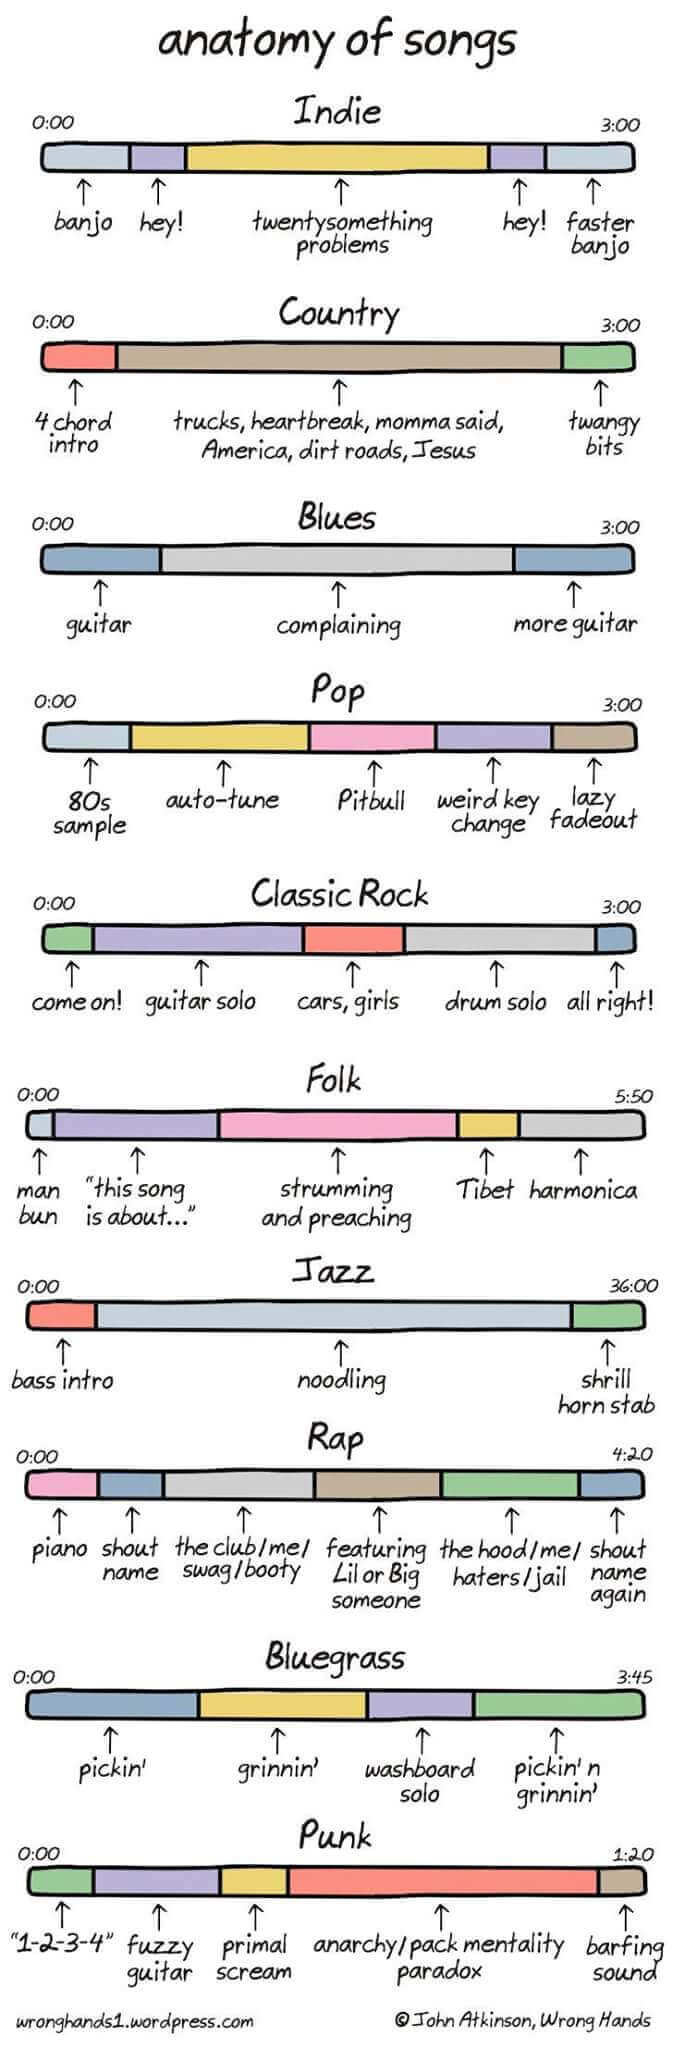 songs anatomy comic cartoon